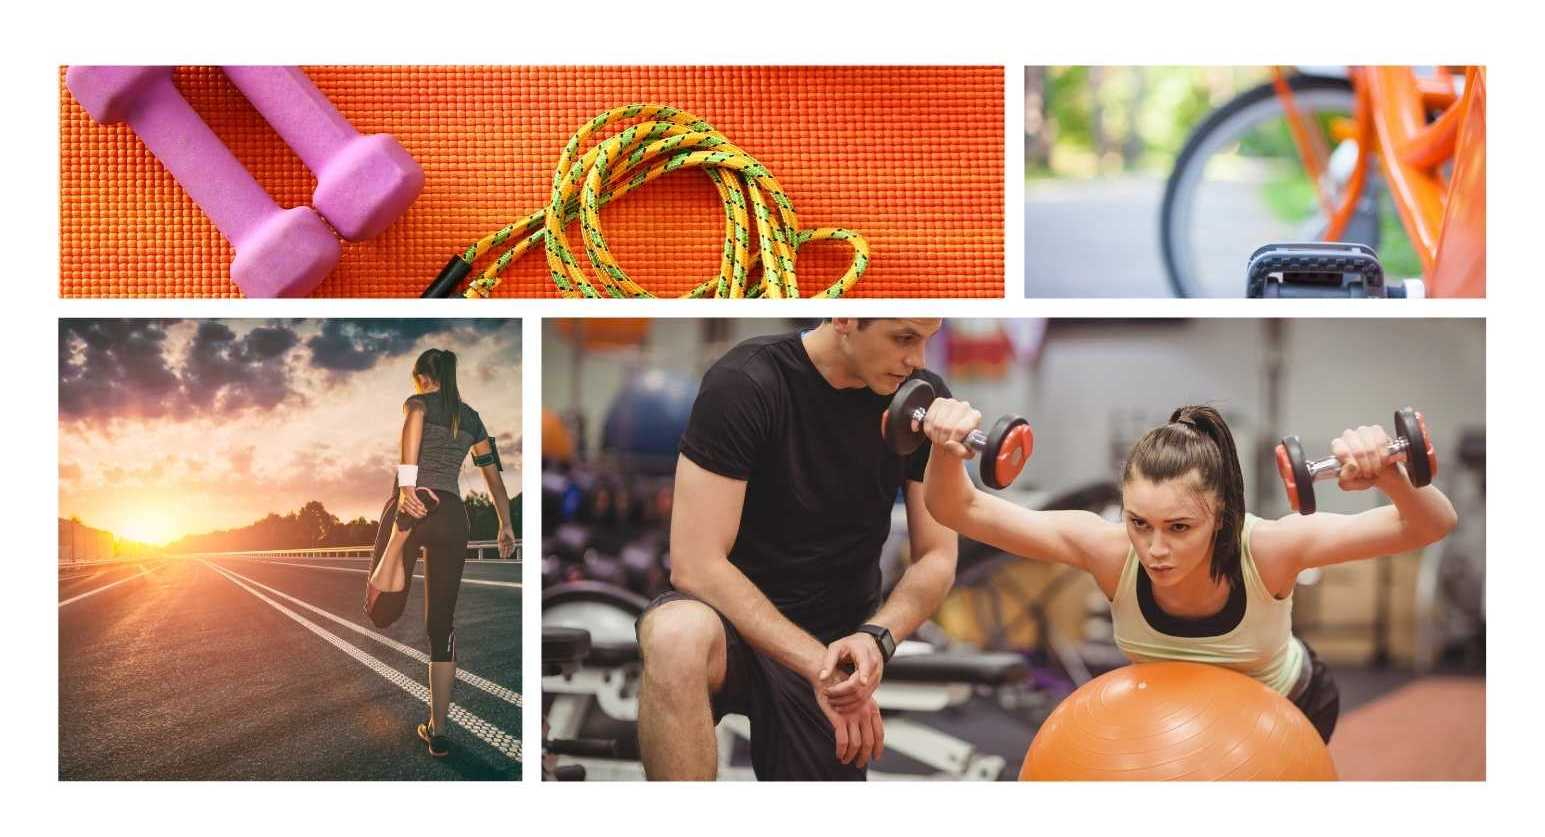 Example of images for fictional gym